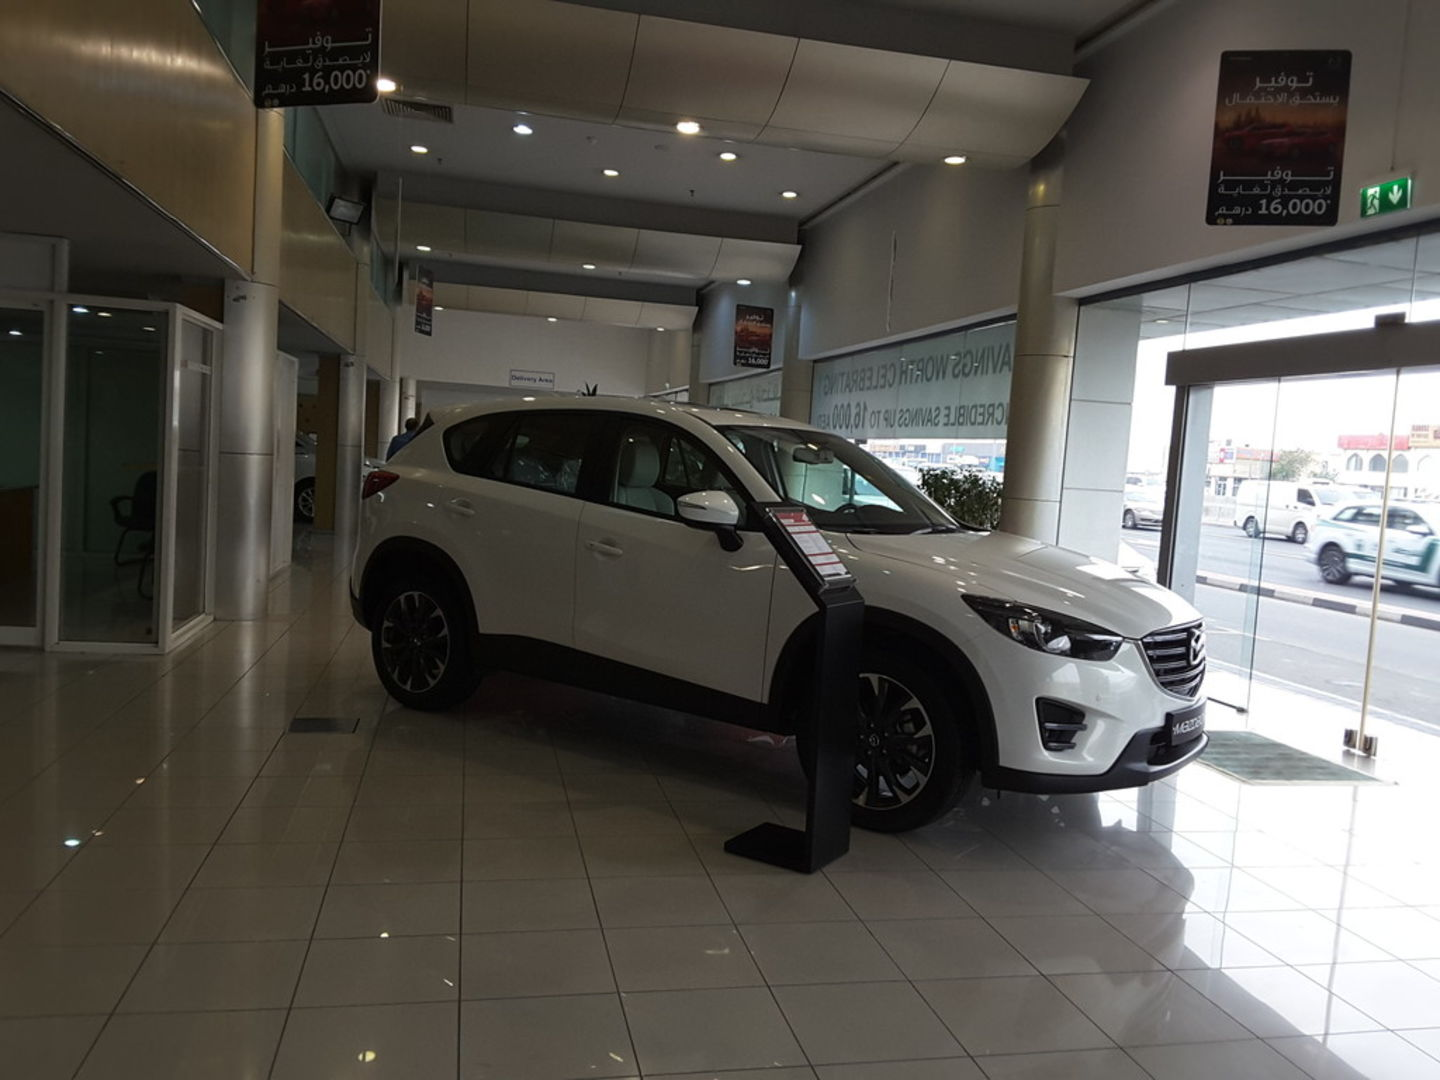 HiDubai-business-mazda-galadari-automobiles-transport-vehicle-services-car-showrooms-service-centres-al-twar-1-dubai-2